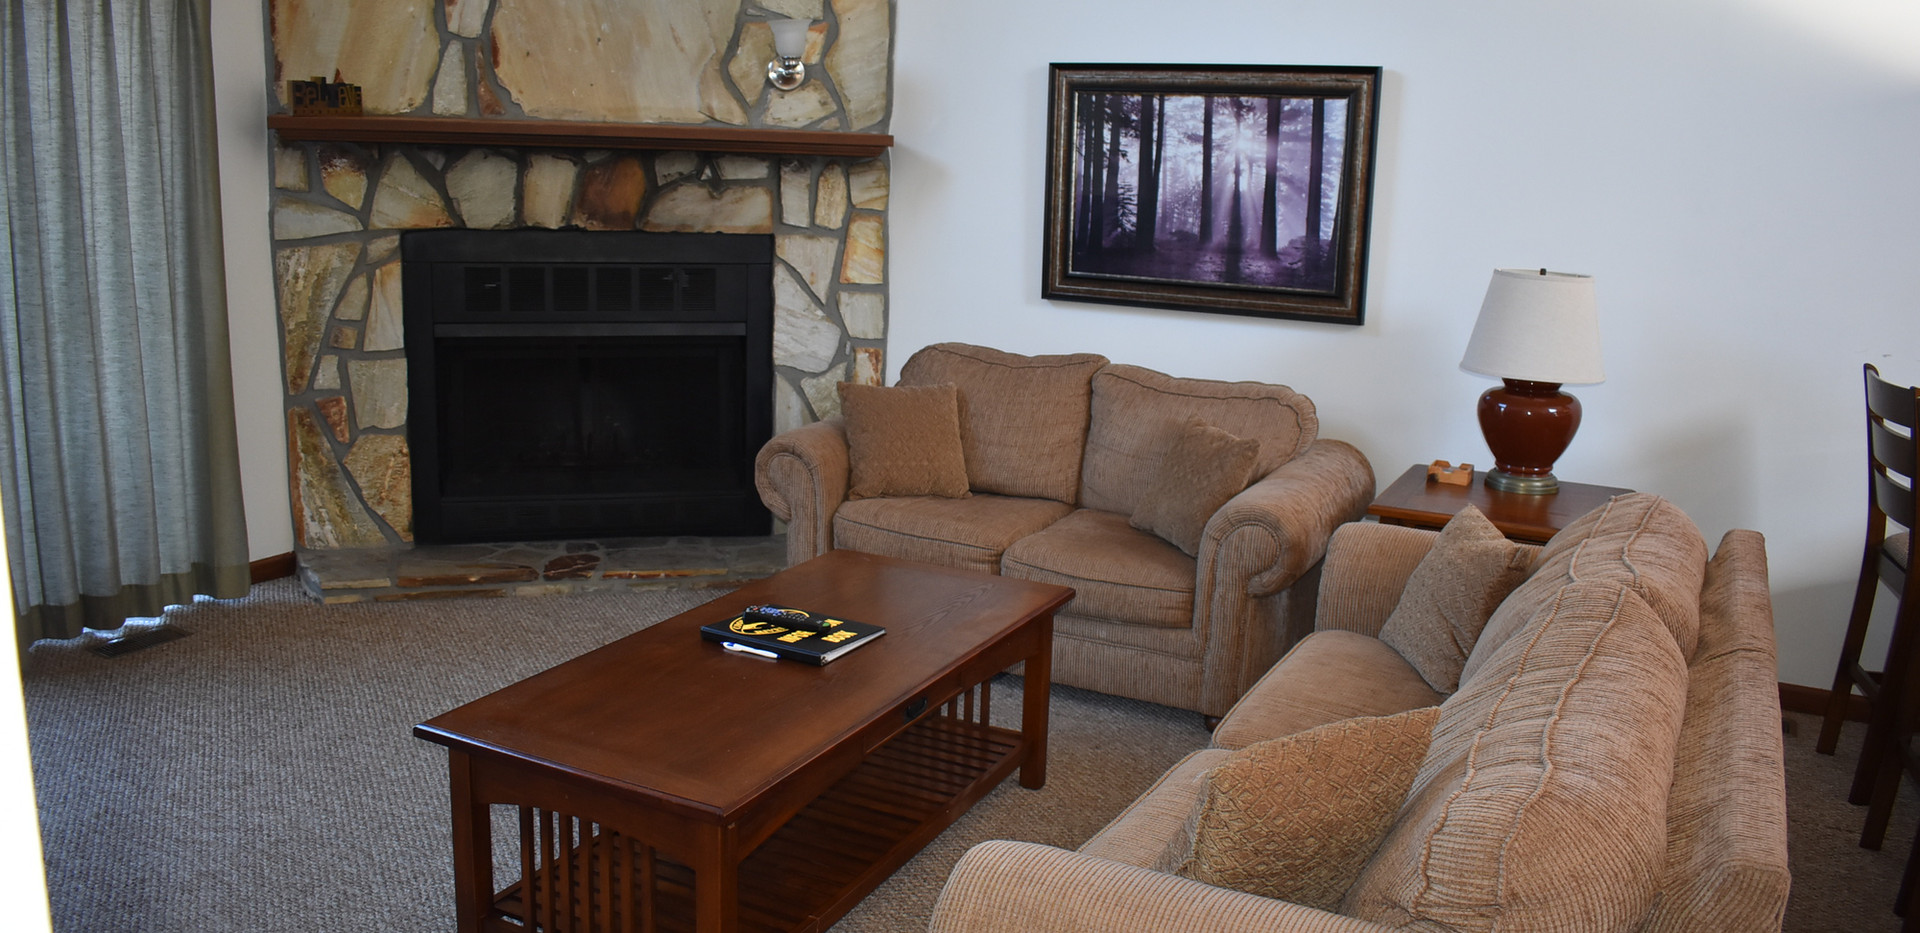 Water Tower - 3 BR - Living Room & Fireplace